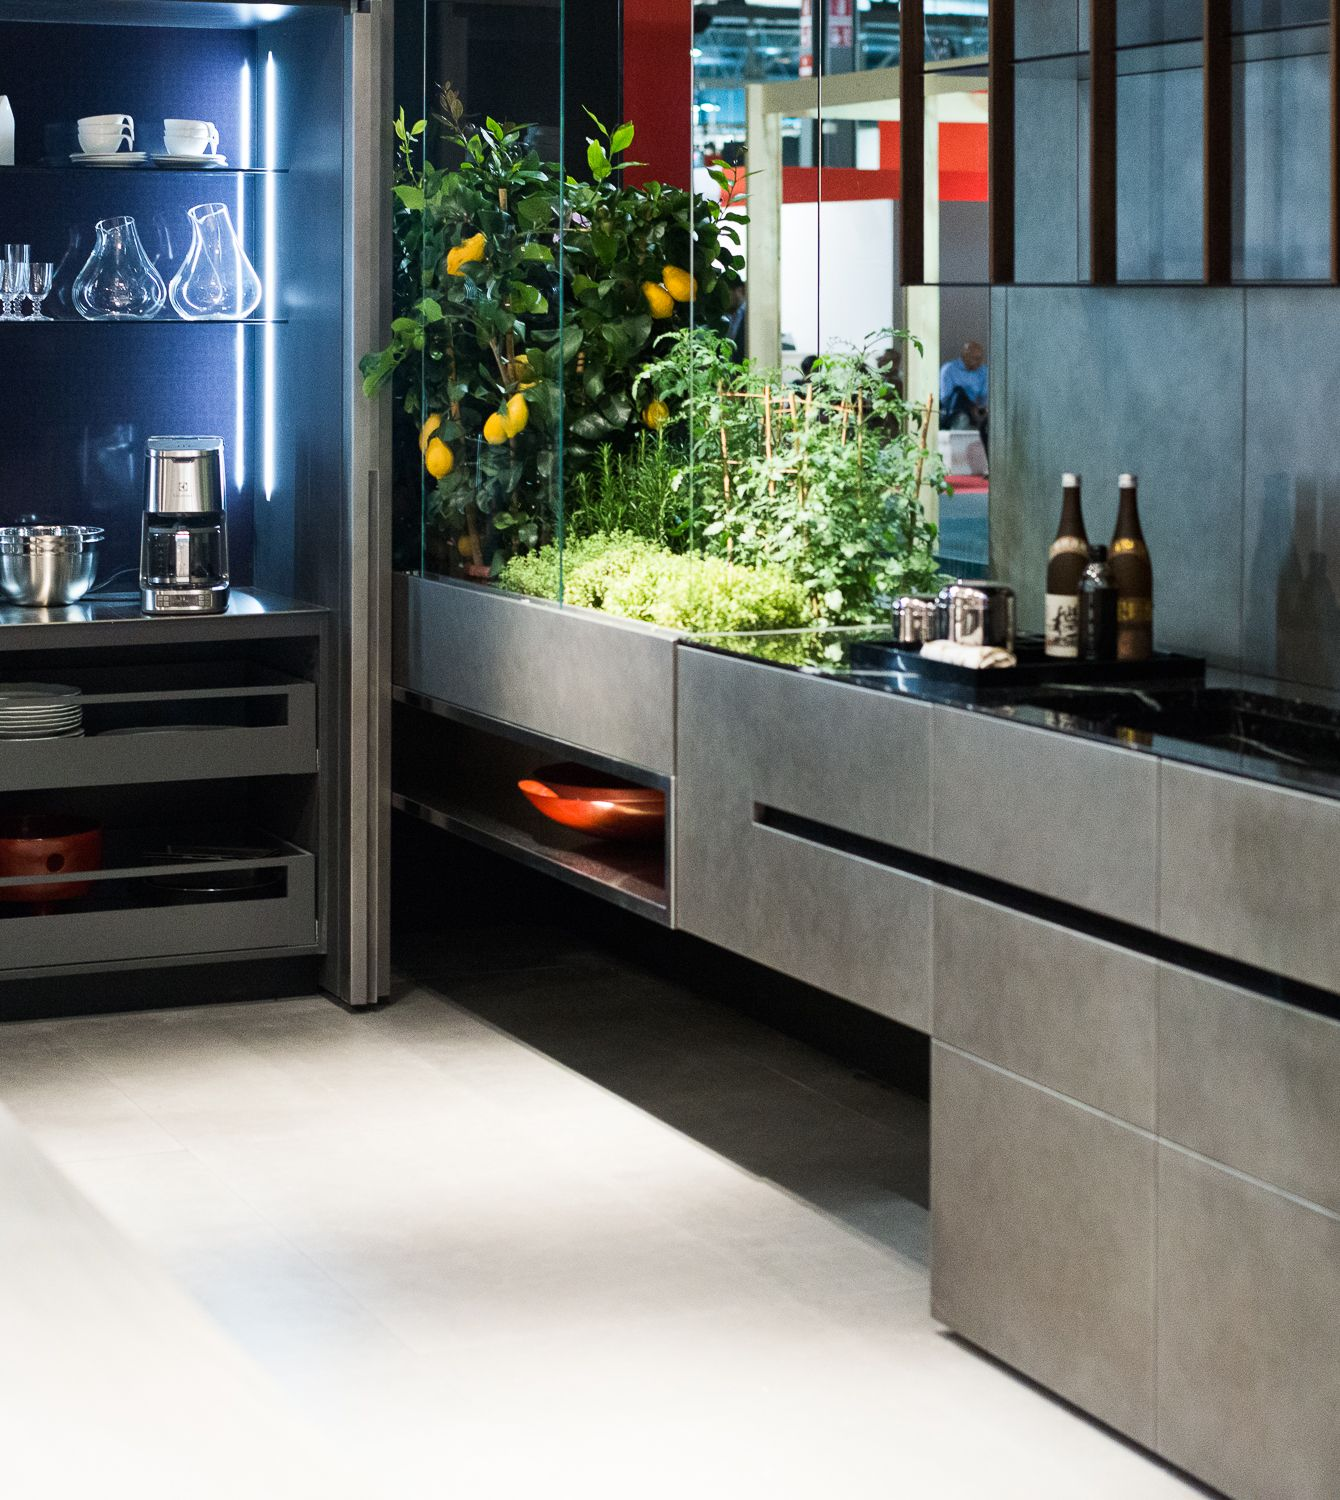 design kitchen italian%0A Modern Italian kitchen design features concealed work areas  warm grays and  always live plants